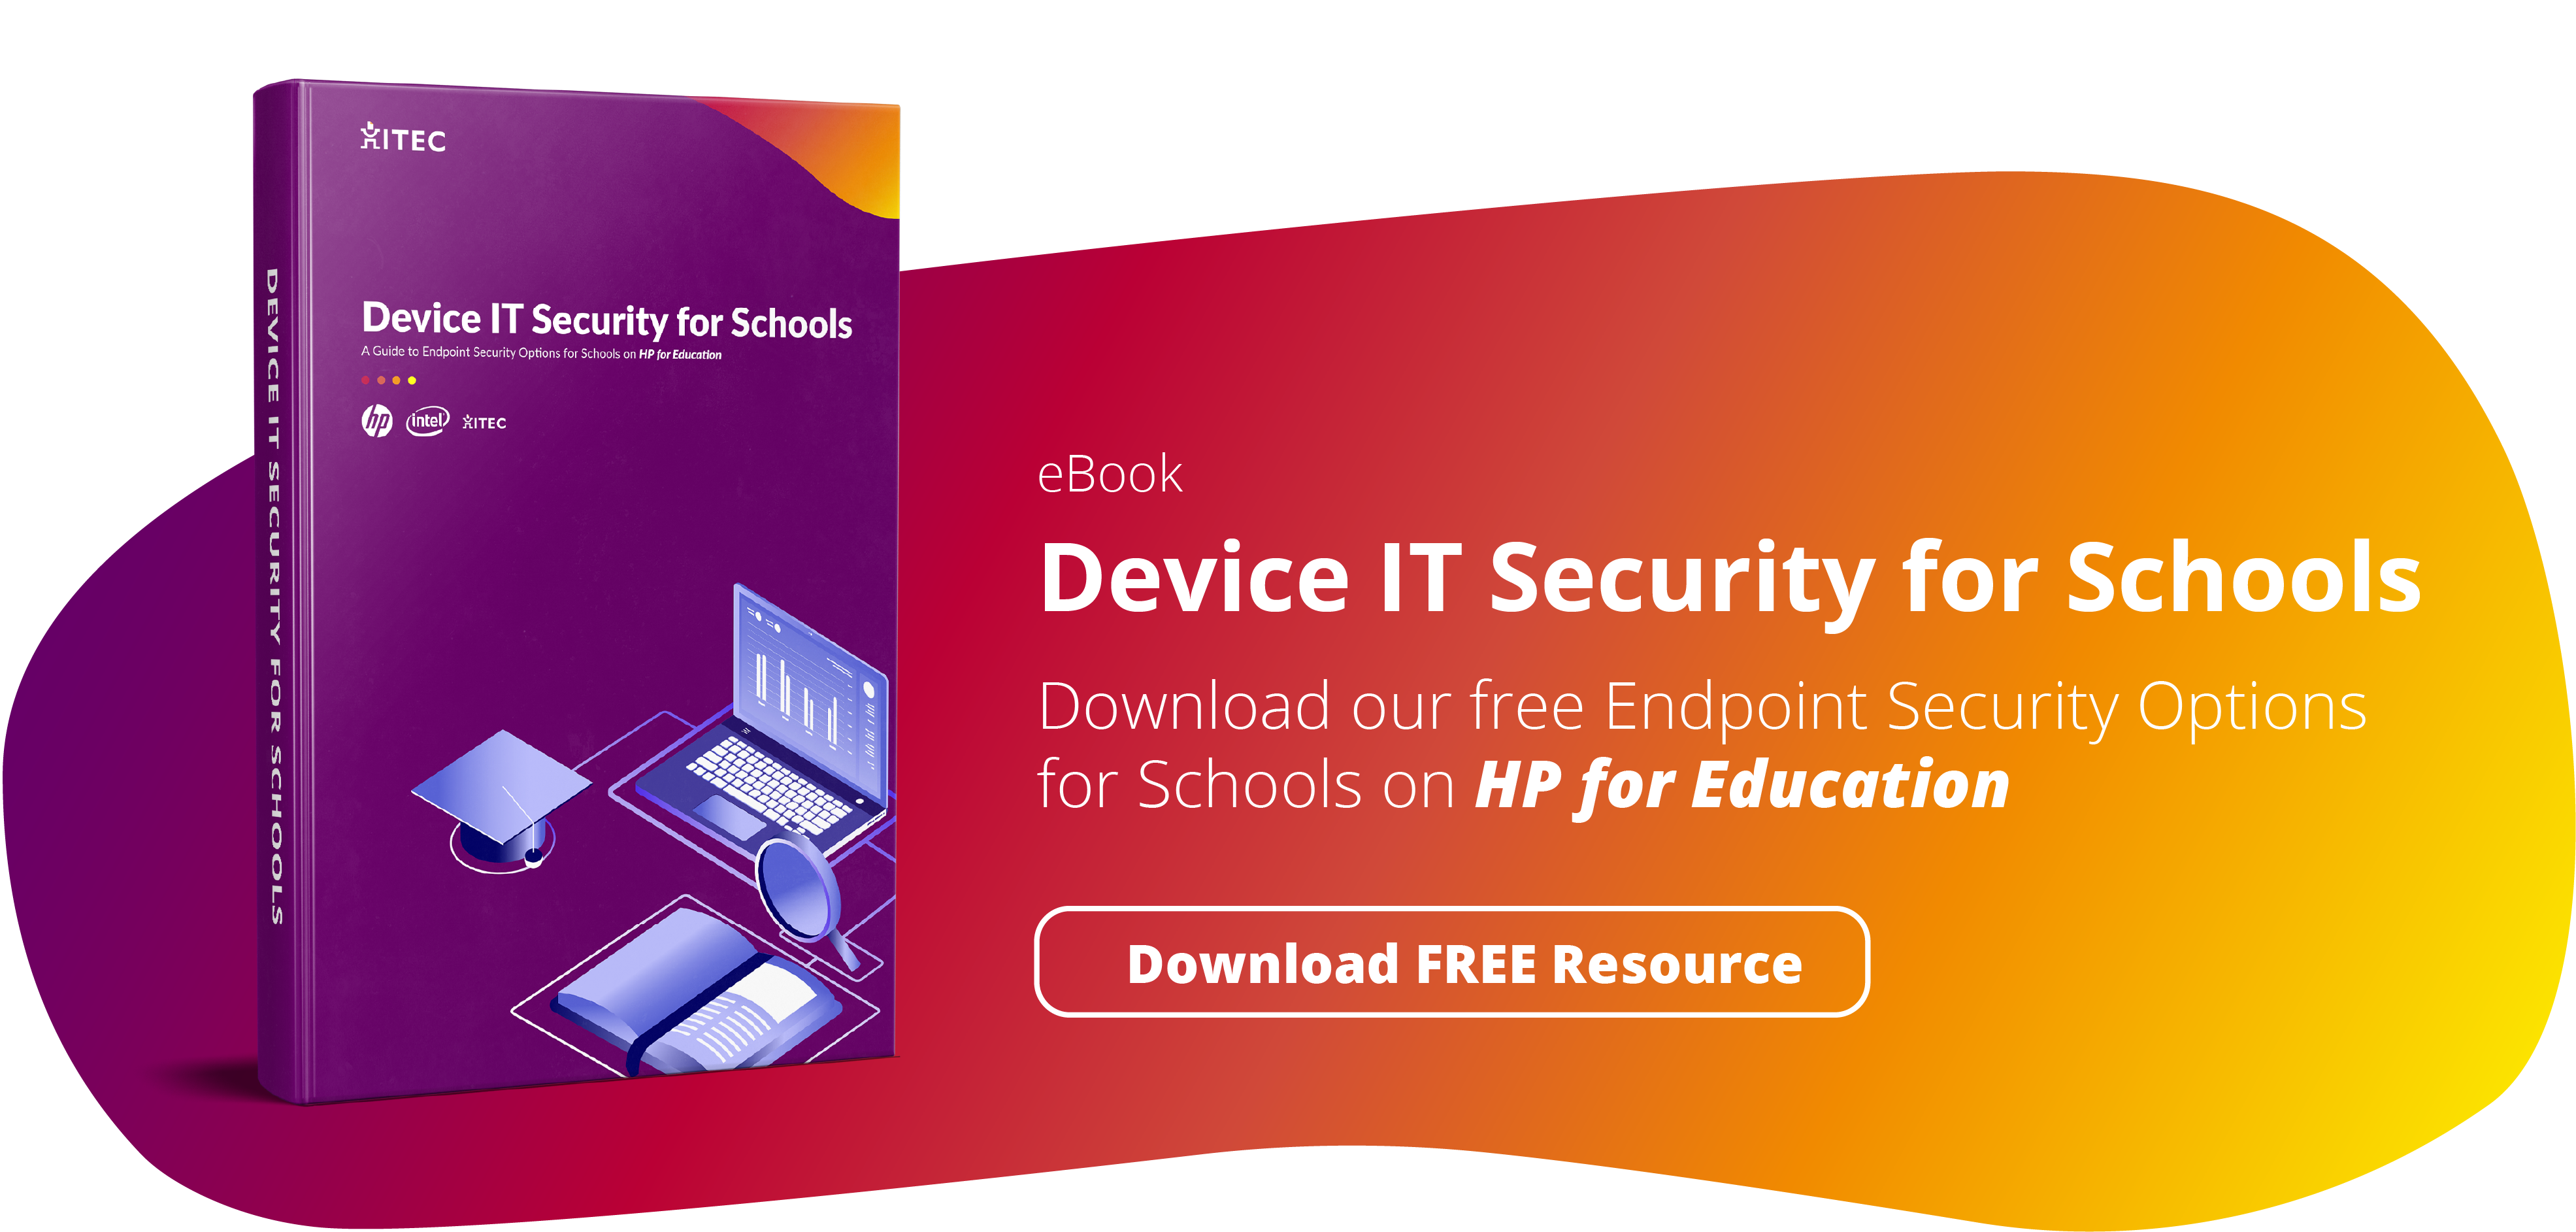 HPfE_device_it_security_download